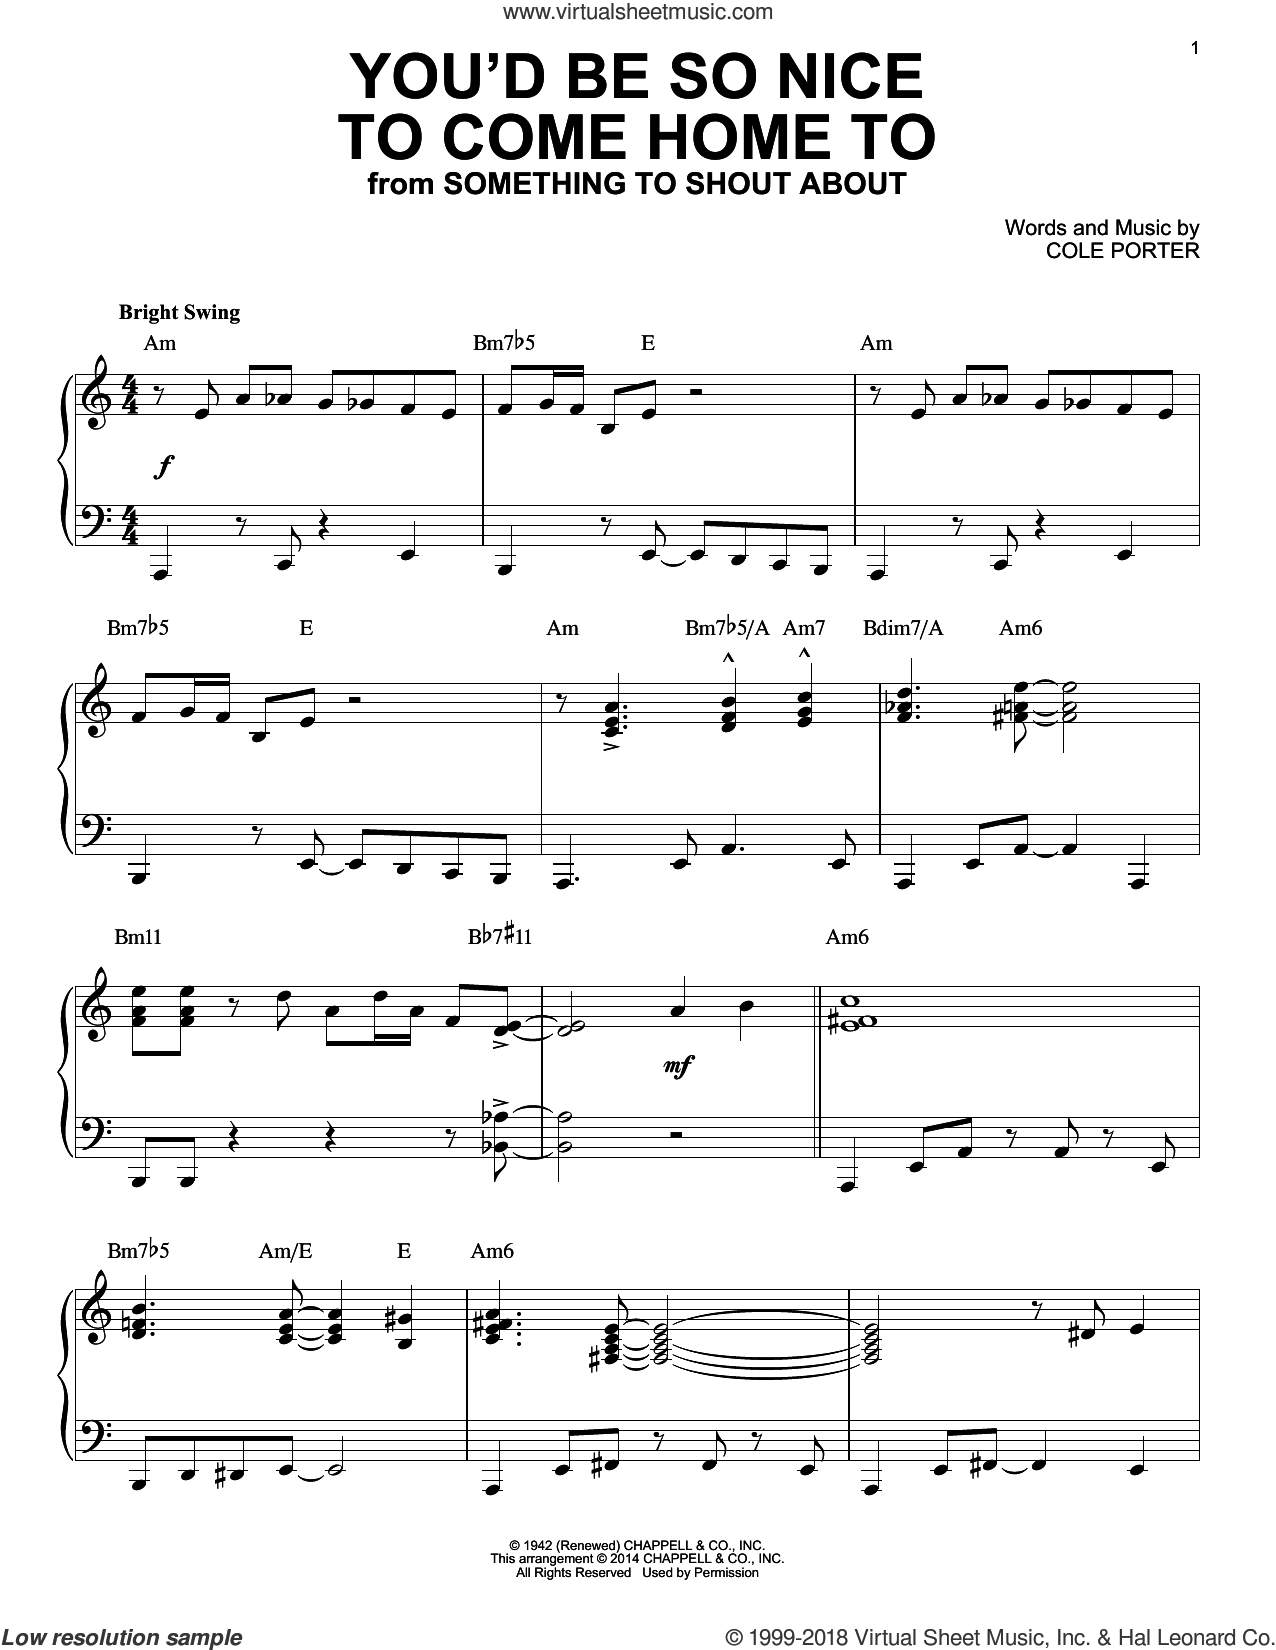 You'd Be So Nice To Come Home To sheet music for piano solo by Cole Porter, intermediate skill level